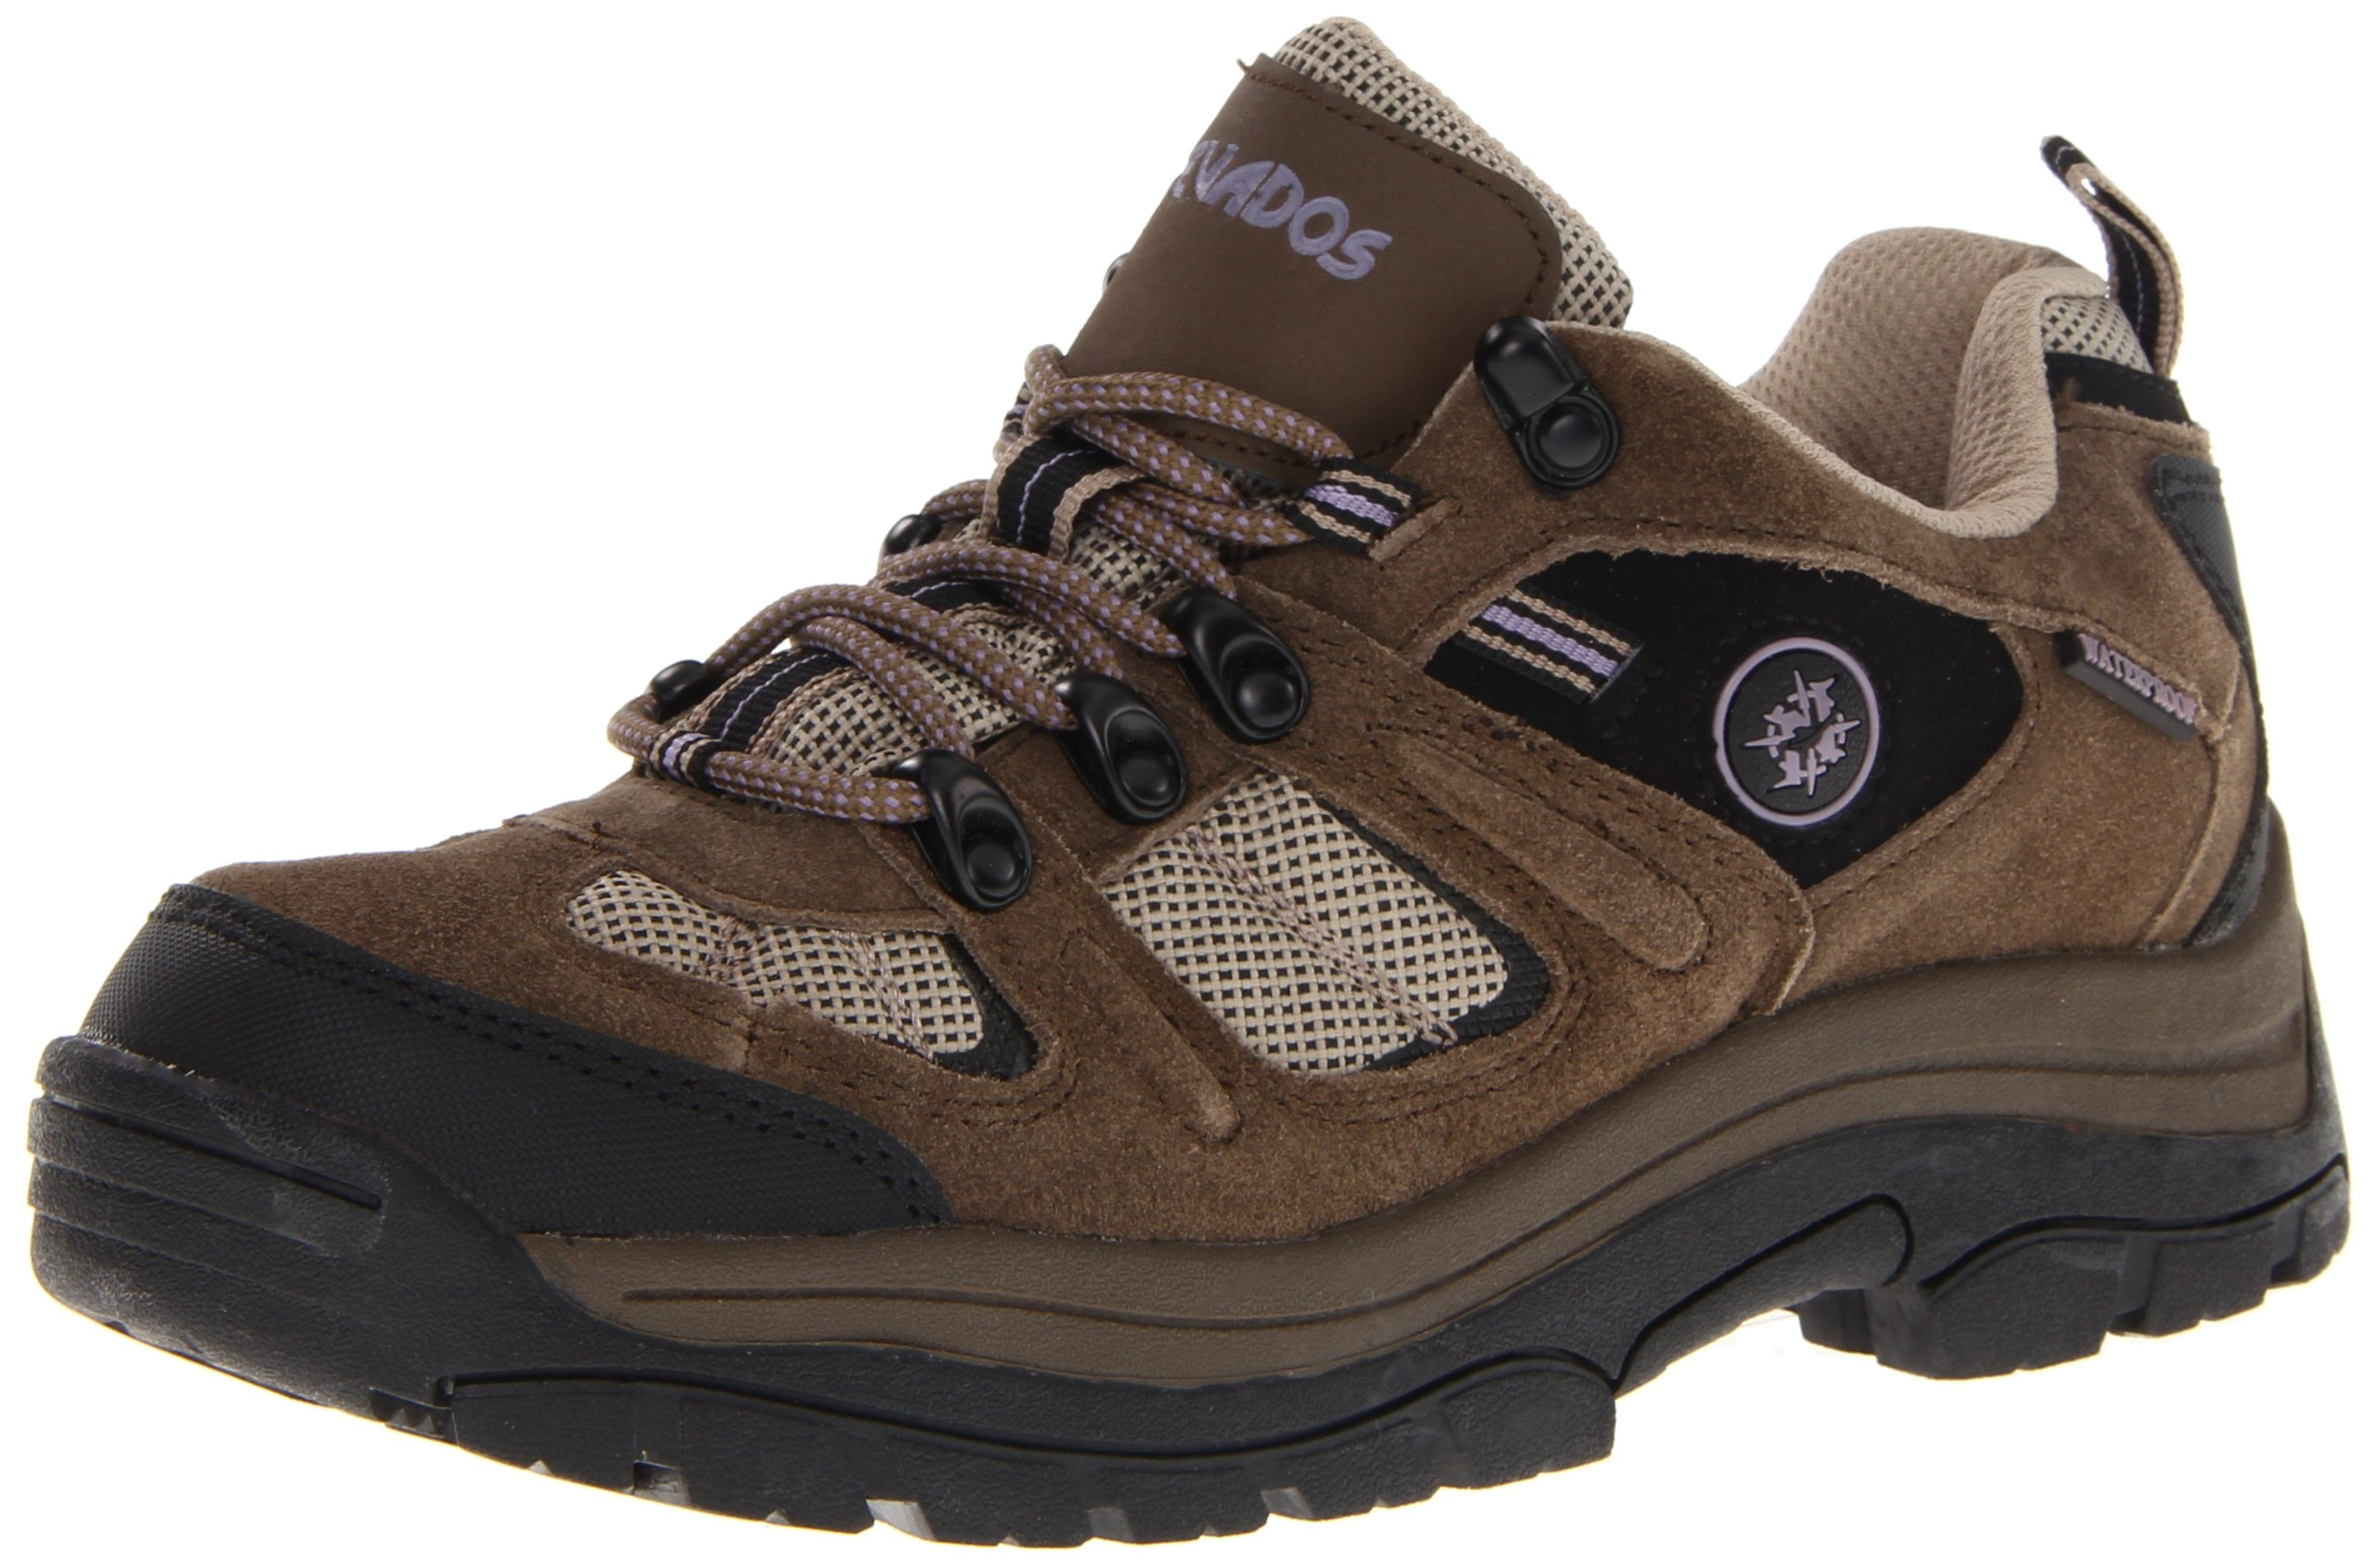 Nevados Women's Klondike Waterproof Low V4161W Hiking Boot,Dark Brown/Black/Taupe,9.5 M US